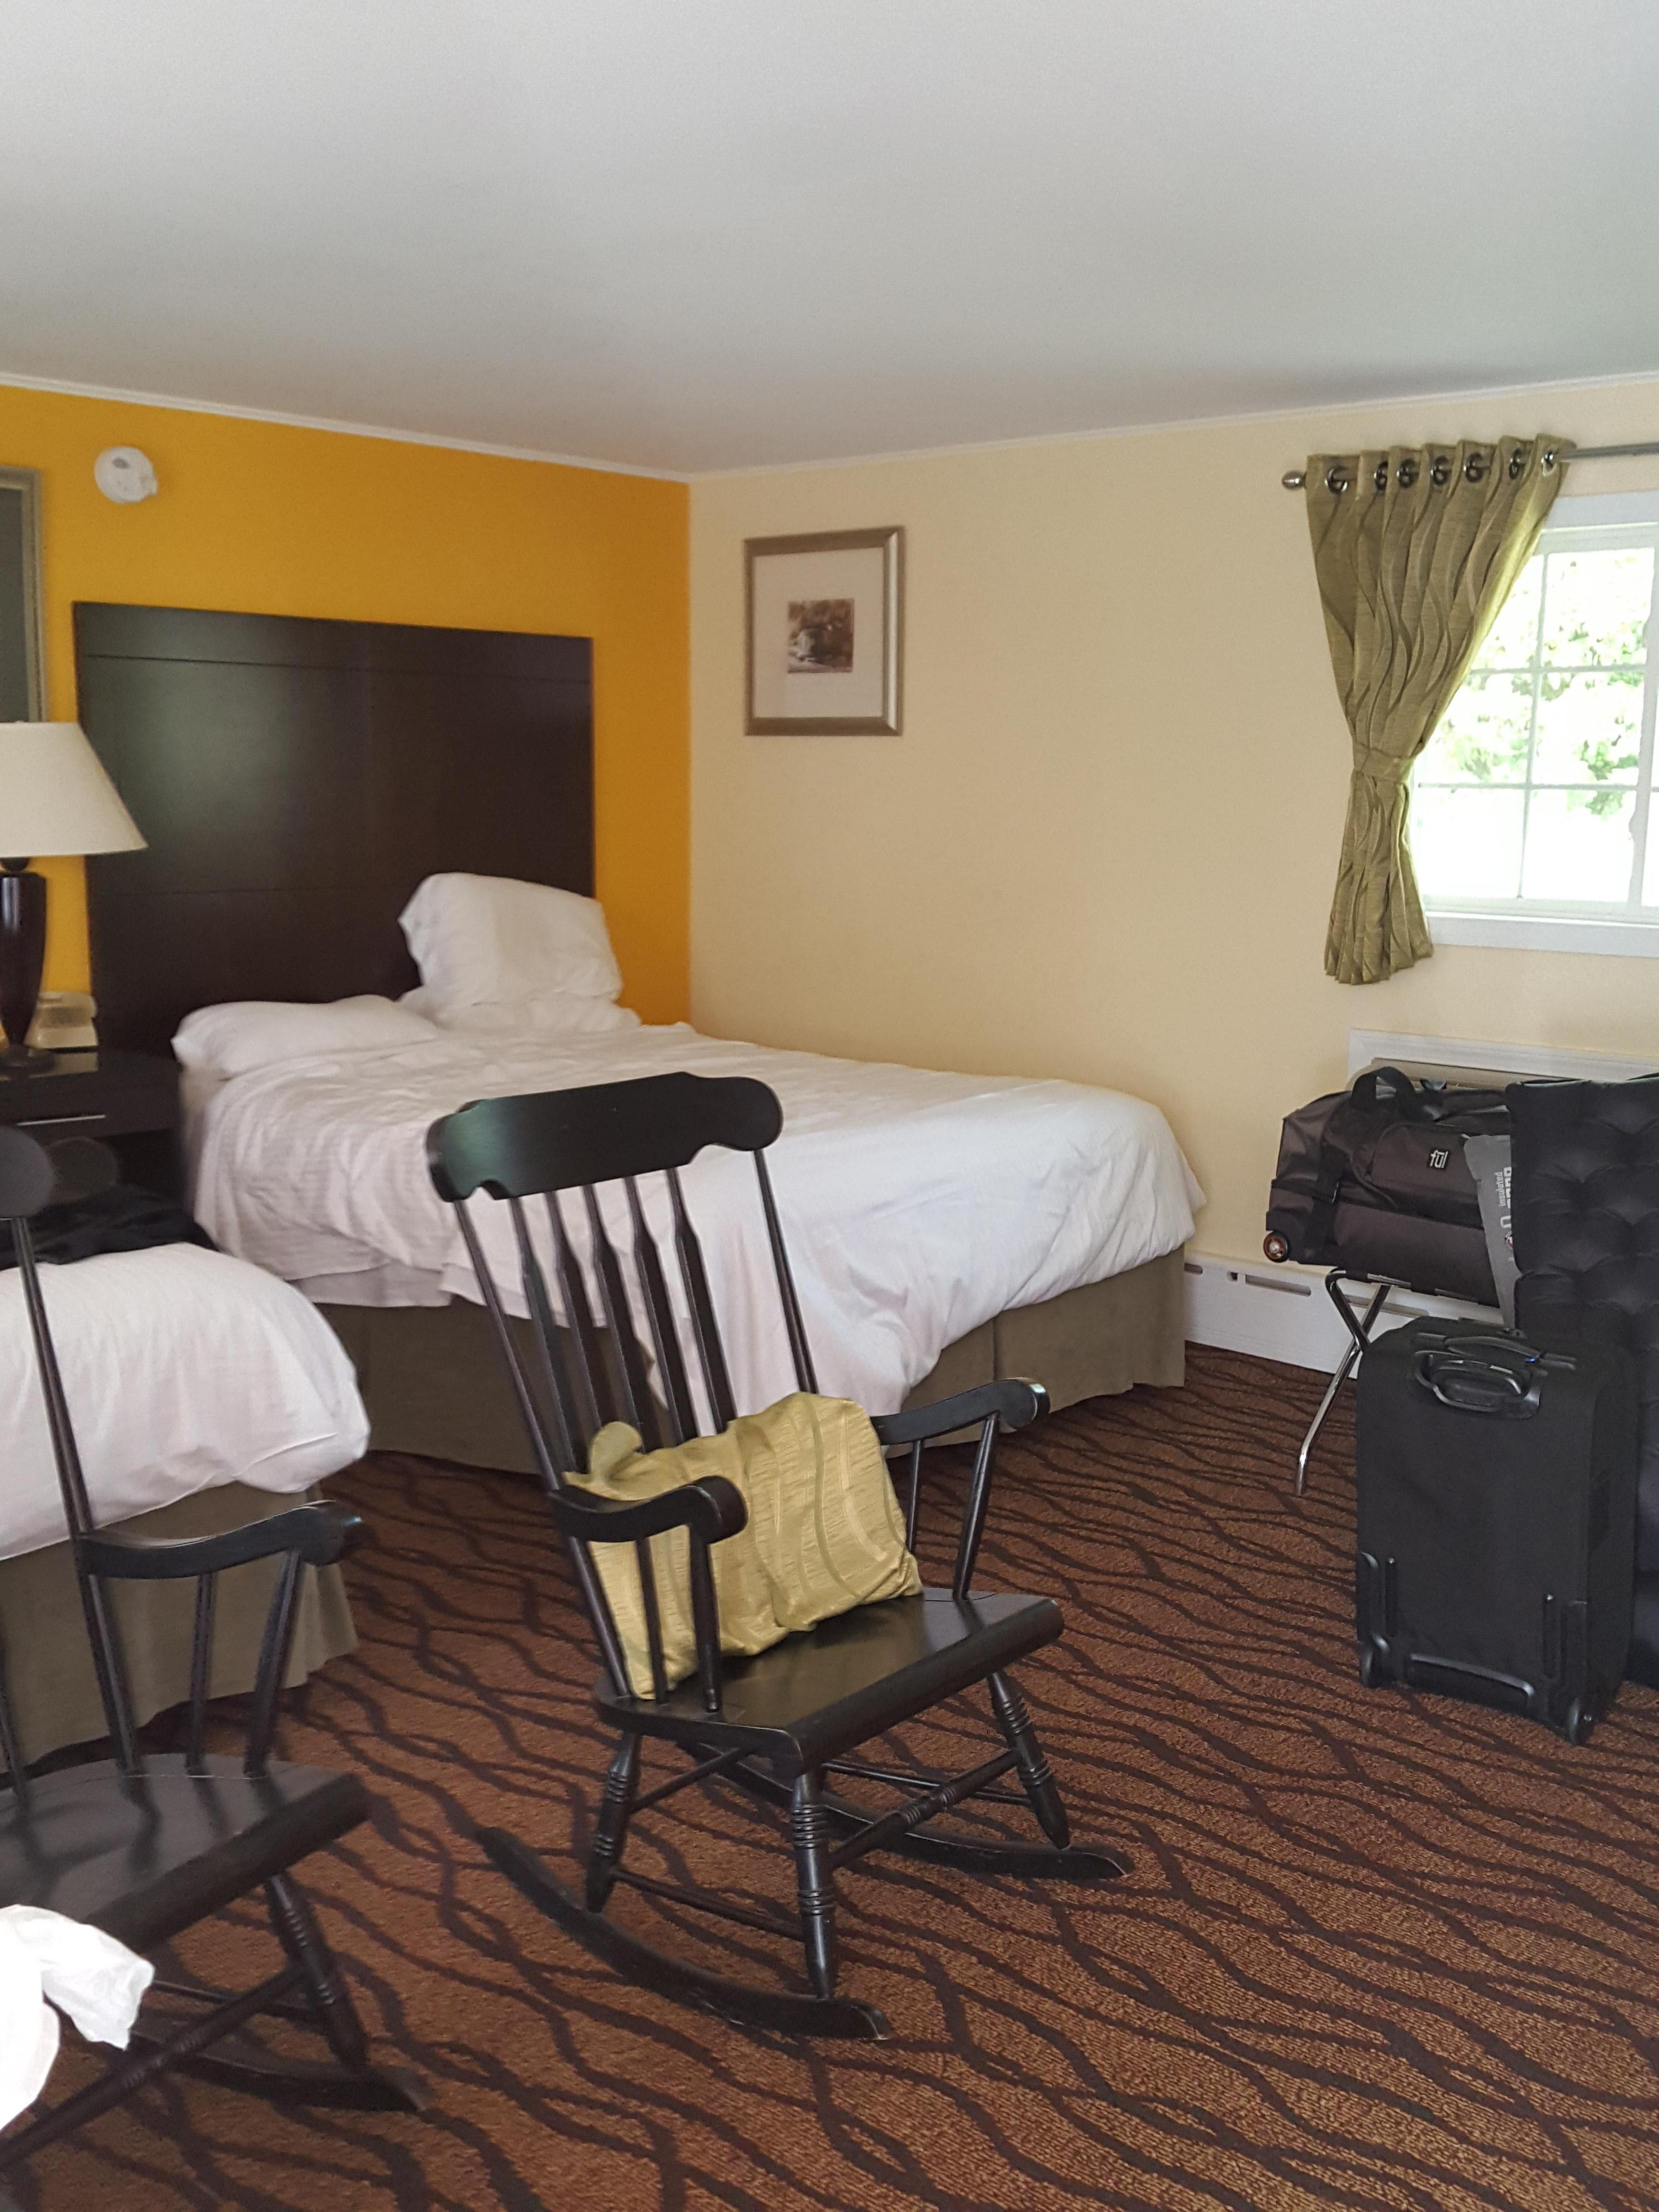 Our room with rocking chairs